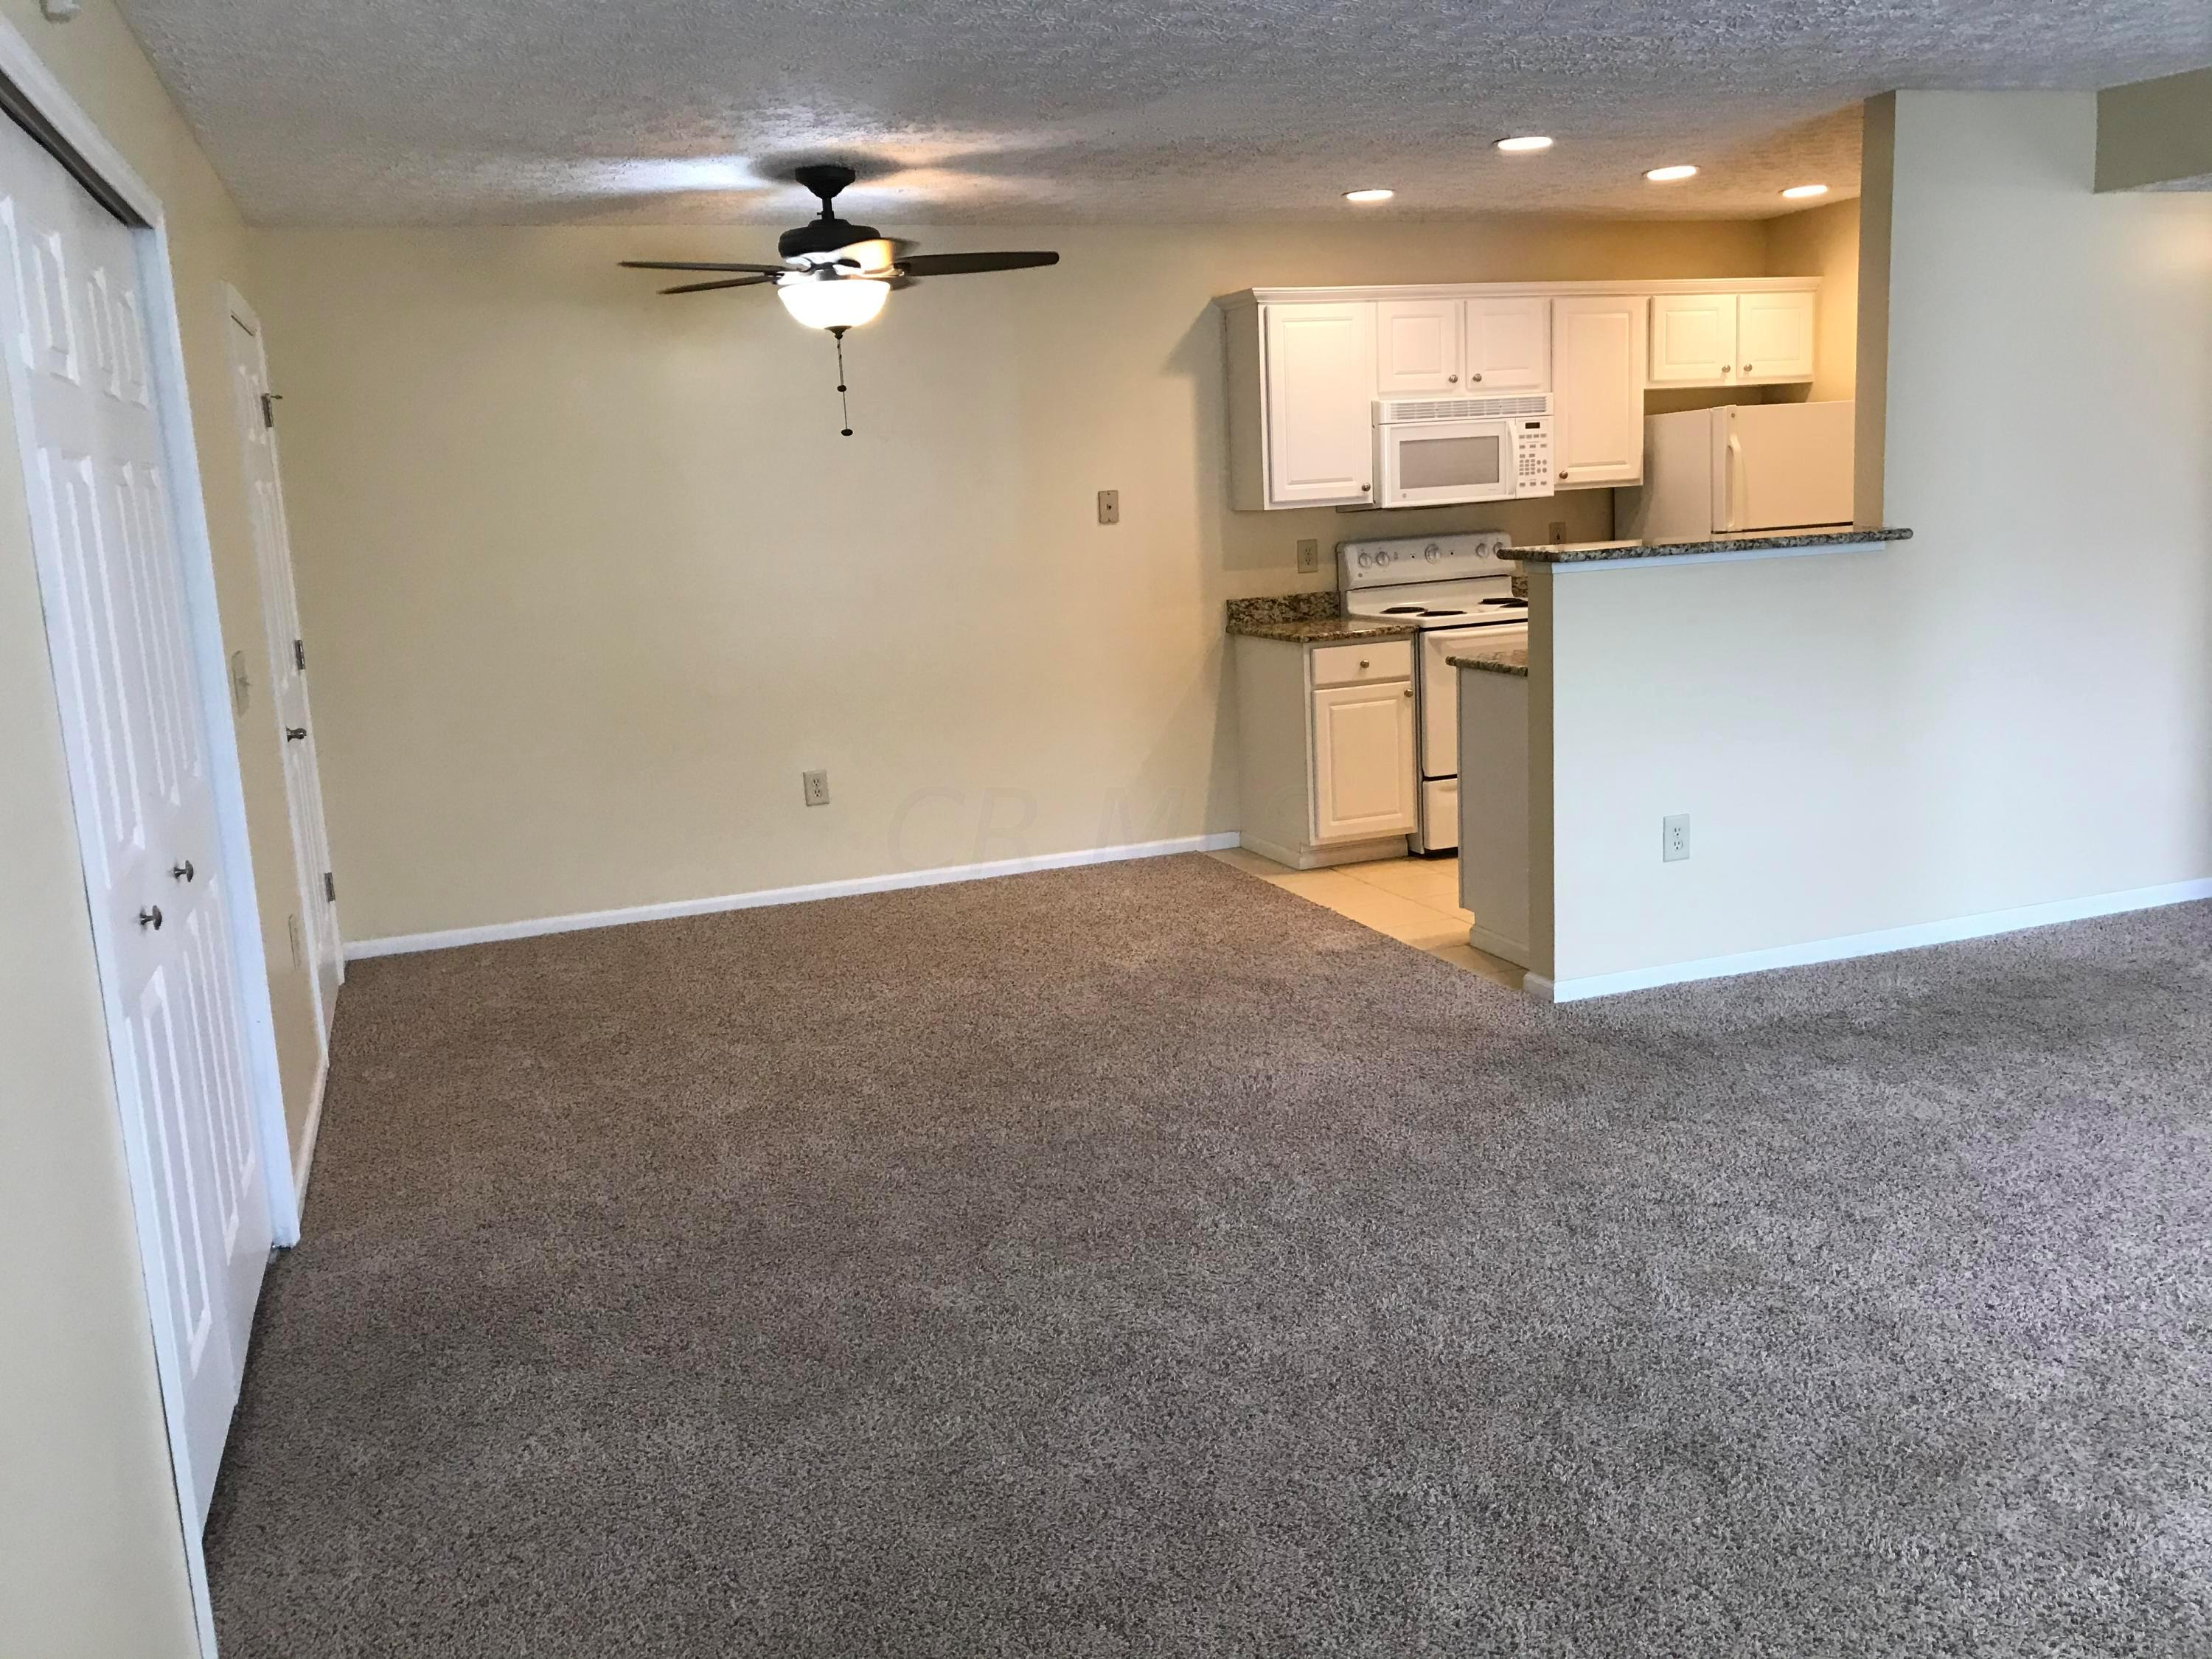 5582 Cypress Chase, Columbus, Ohio 43228, 1 Bedroom Bedrooms, ,1 BathroomBathrooms,Residential,For Sale,Cypress Chase,220032428